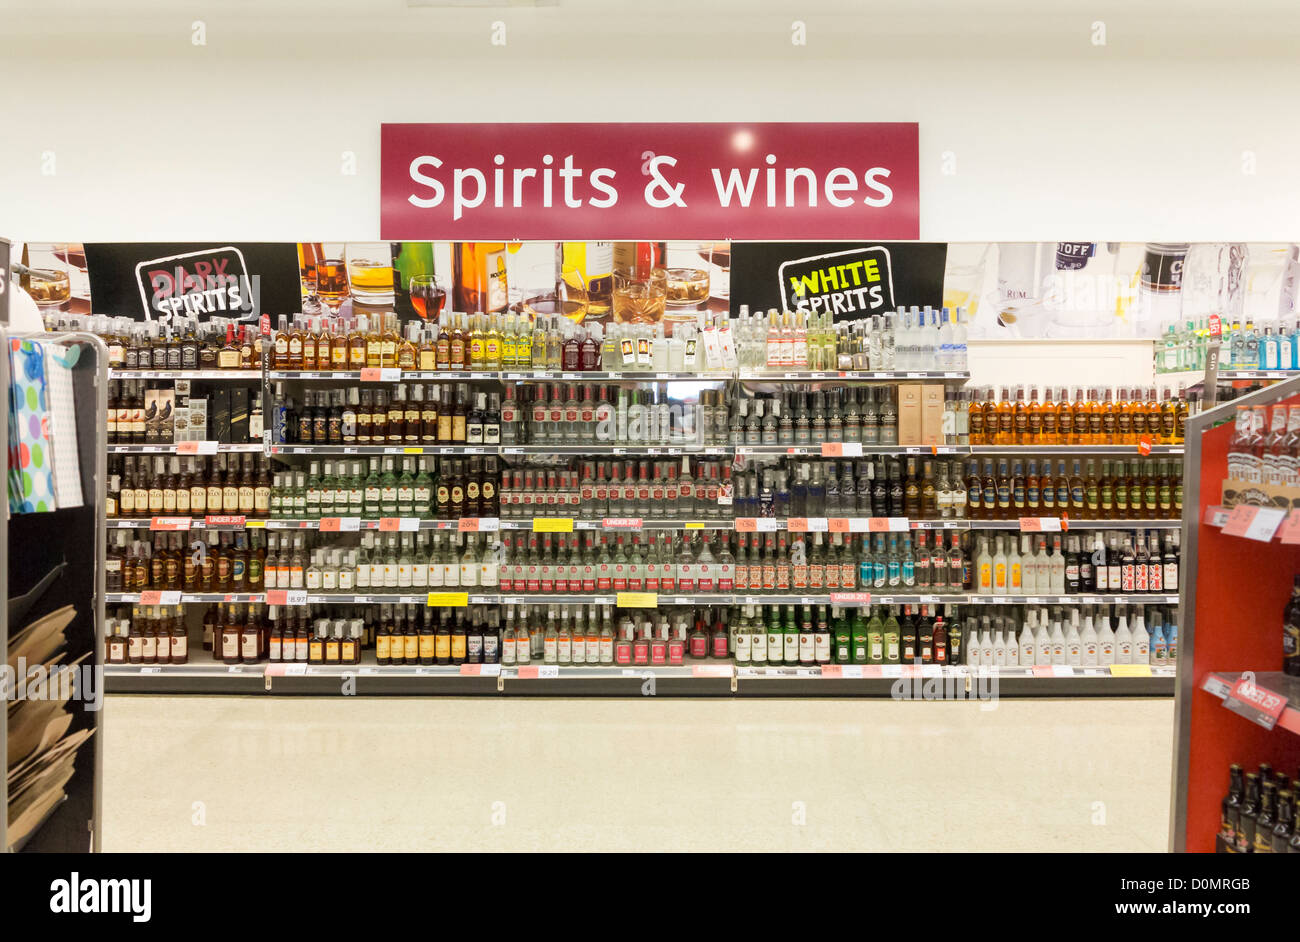 Wines and spirits display in a supermarket, UK - Stock Image